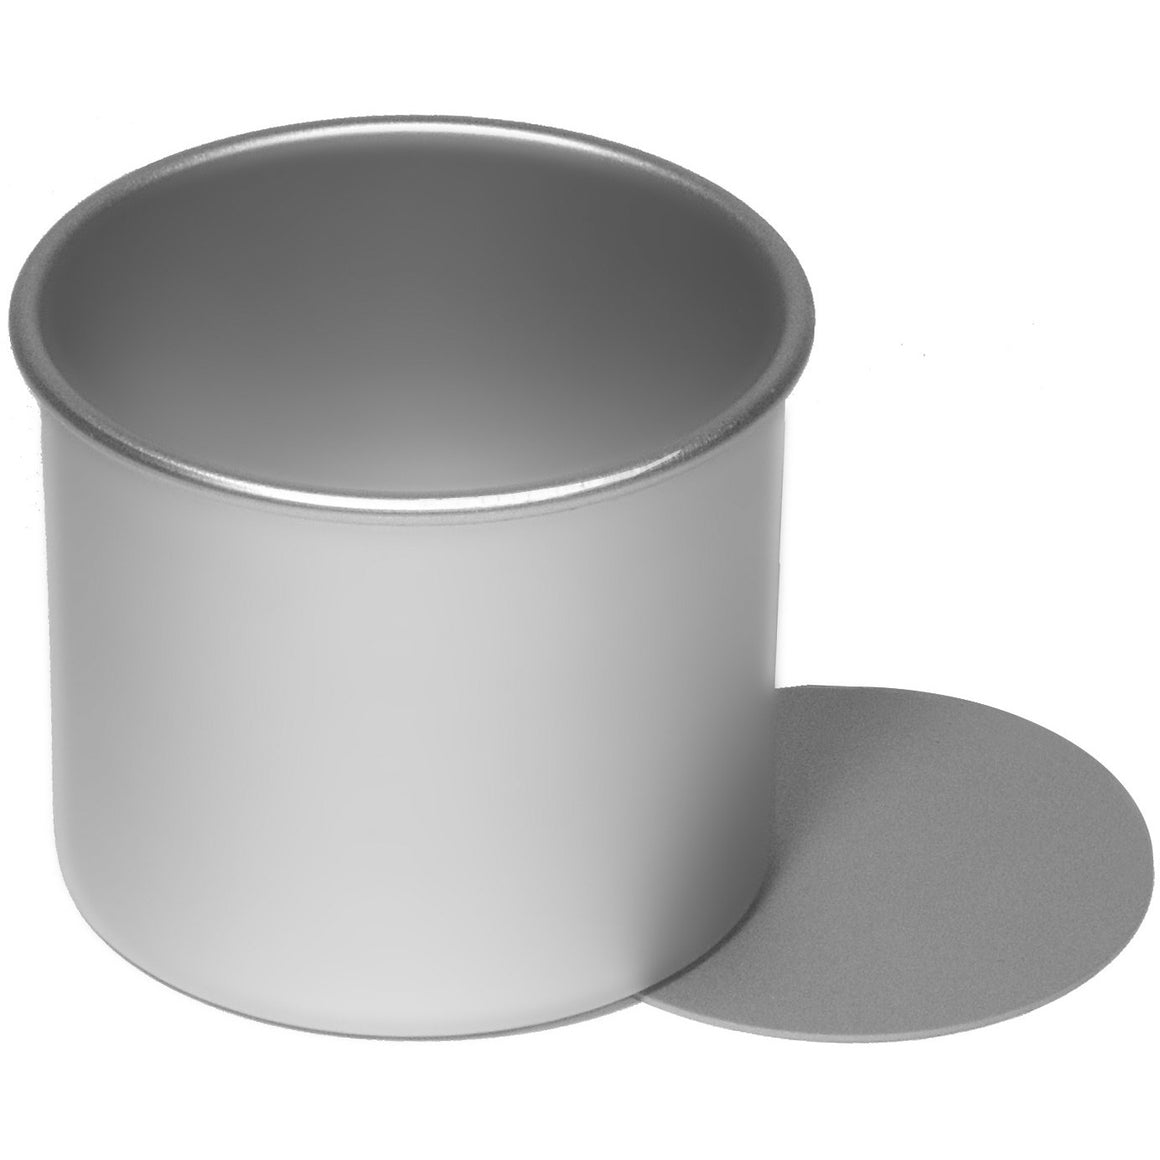 "Silverwood 3"" Pork Pie Tin"